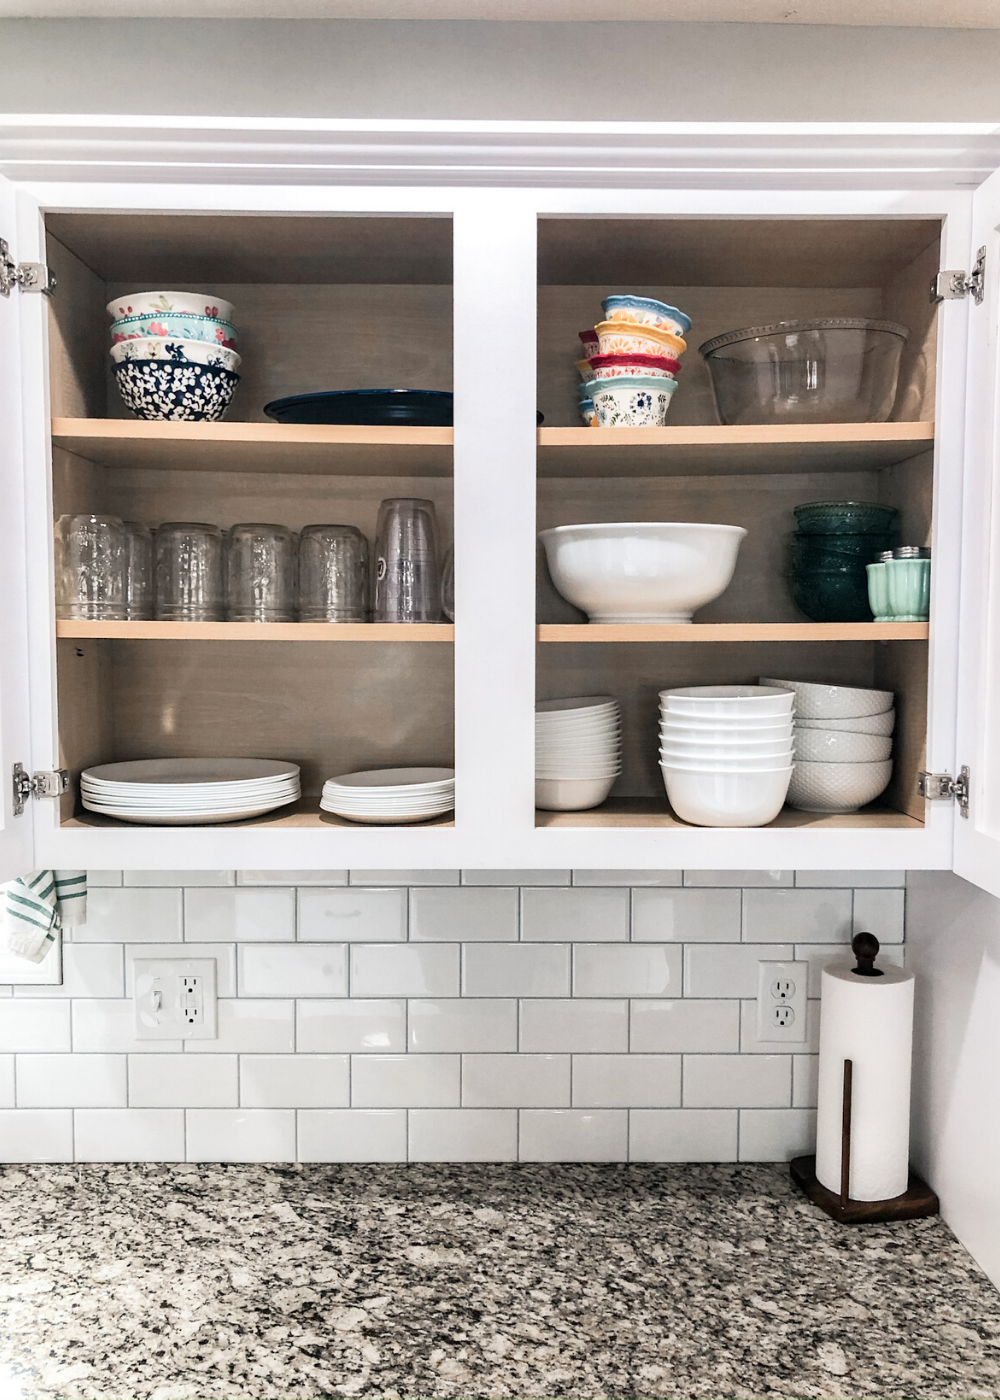 Organized Kitchen - Dishes, Glasses, and Serviceware